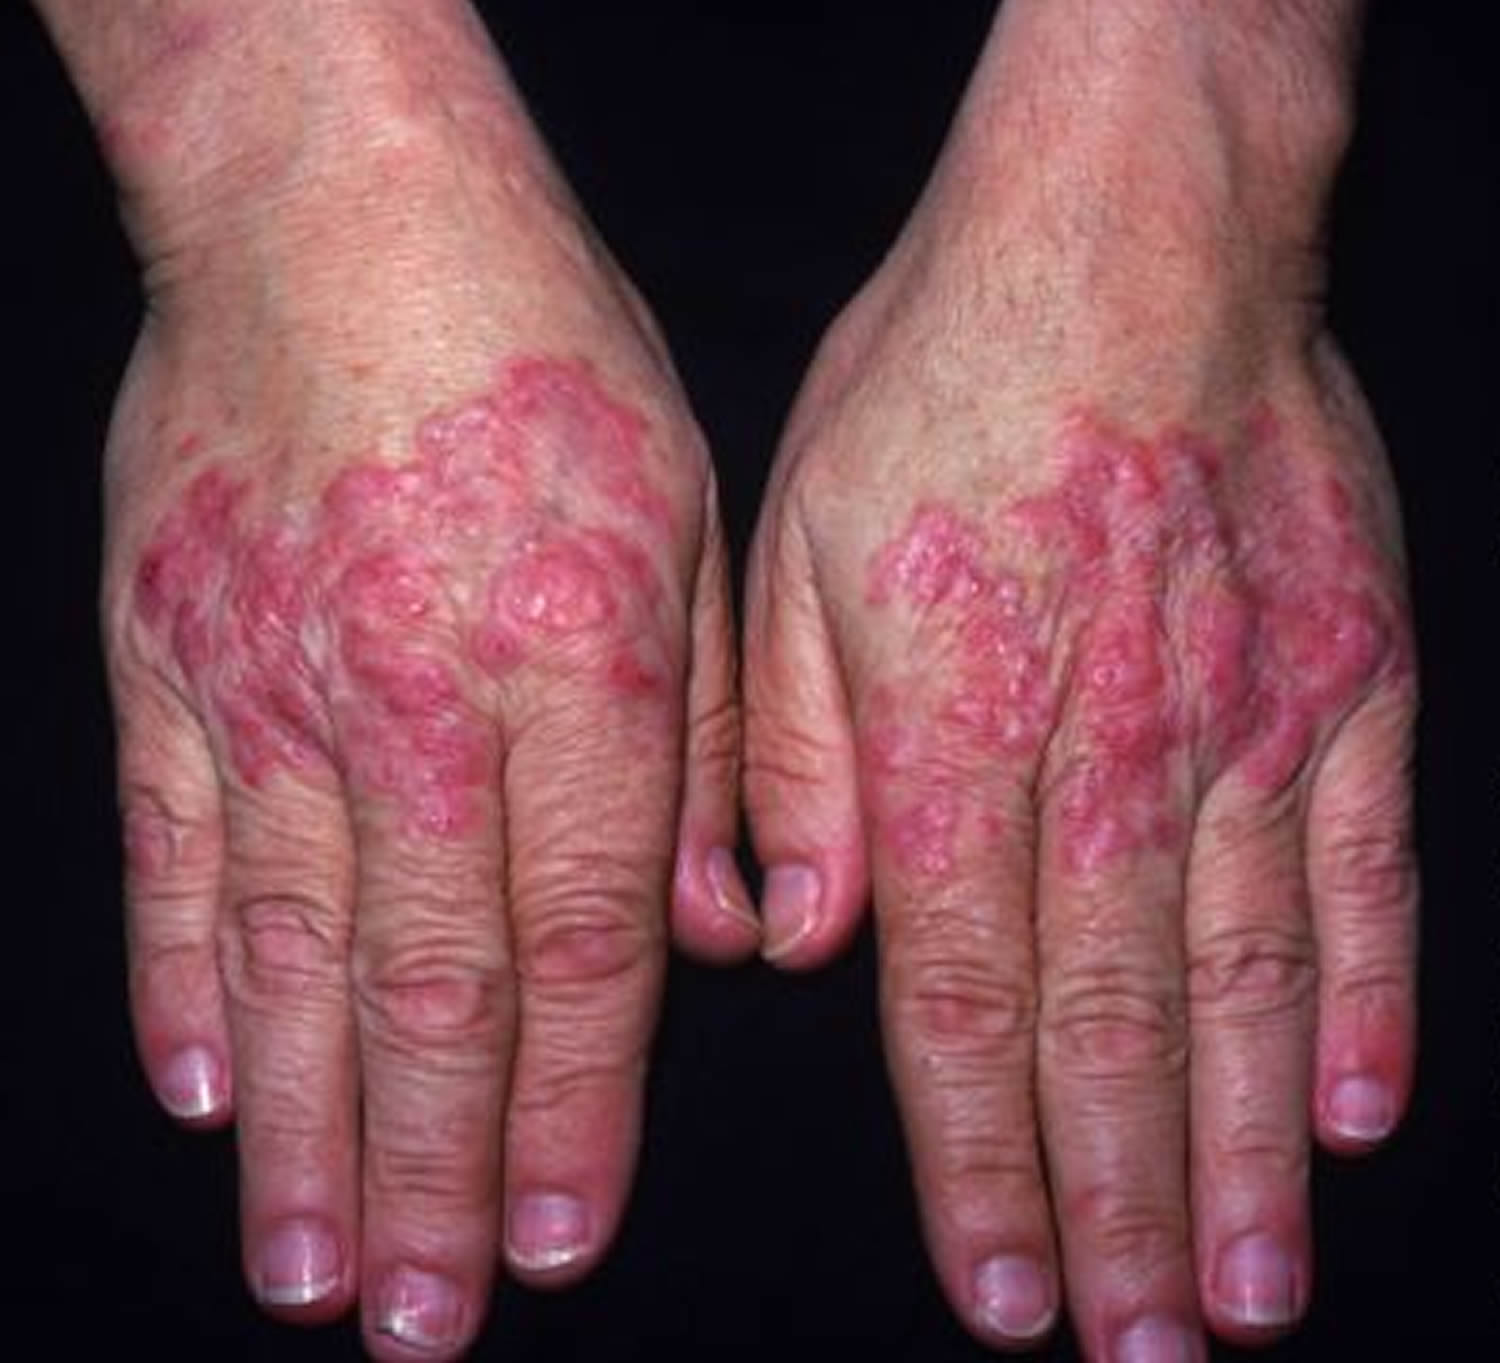 Lupus systemic lupus erythematosus sle causes sign symptoms systemic lupus erythematosus rash sciox Image collections